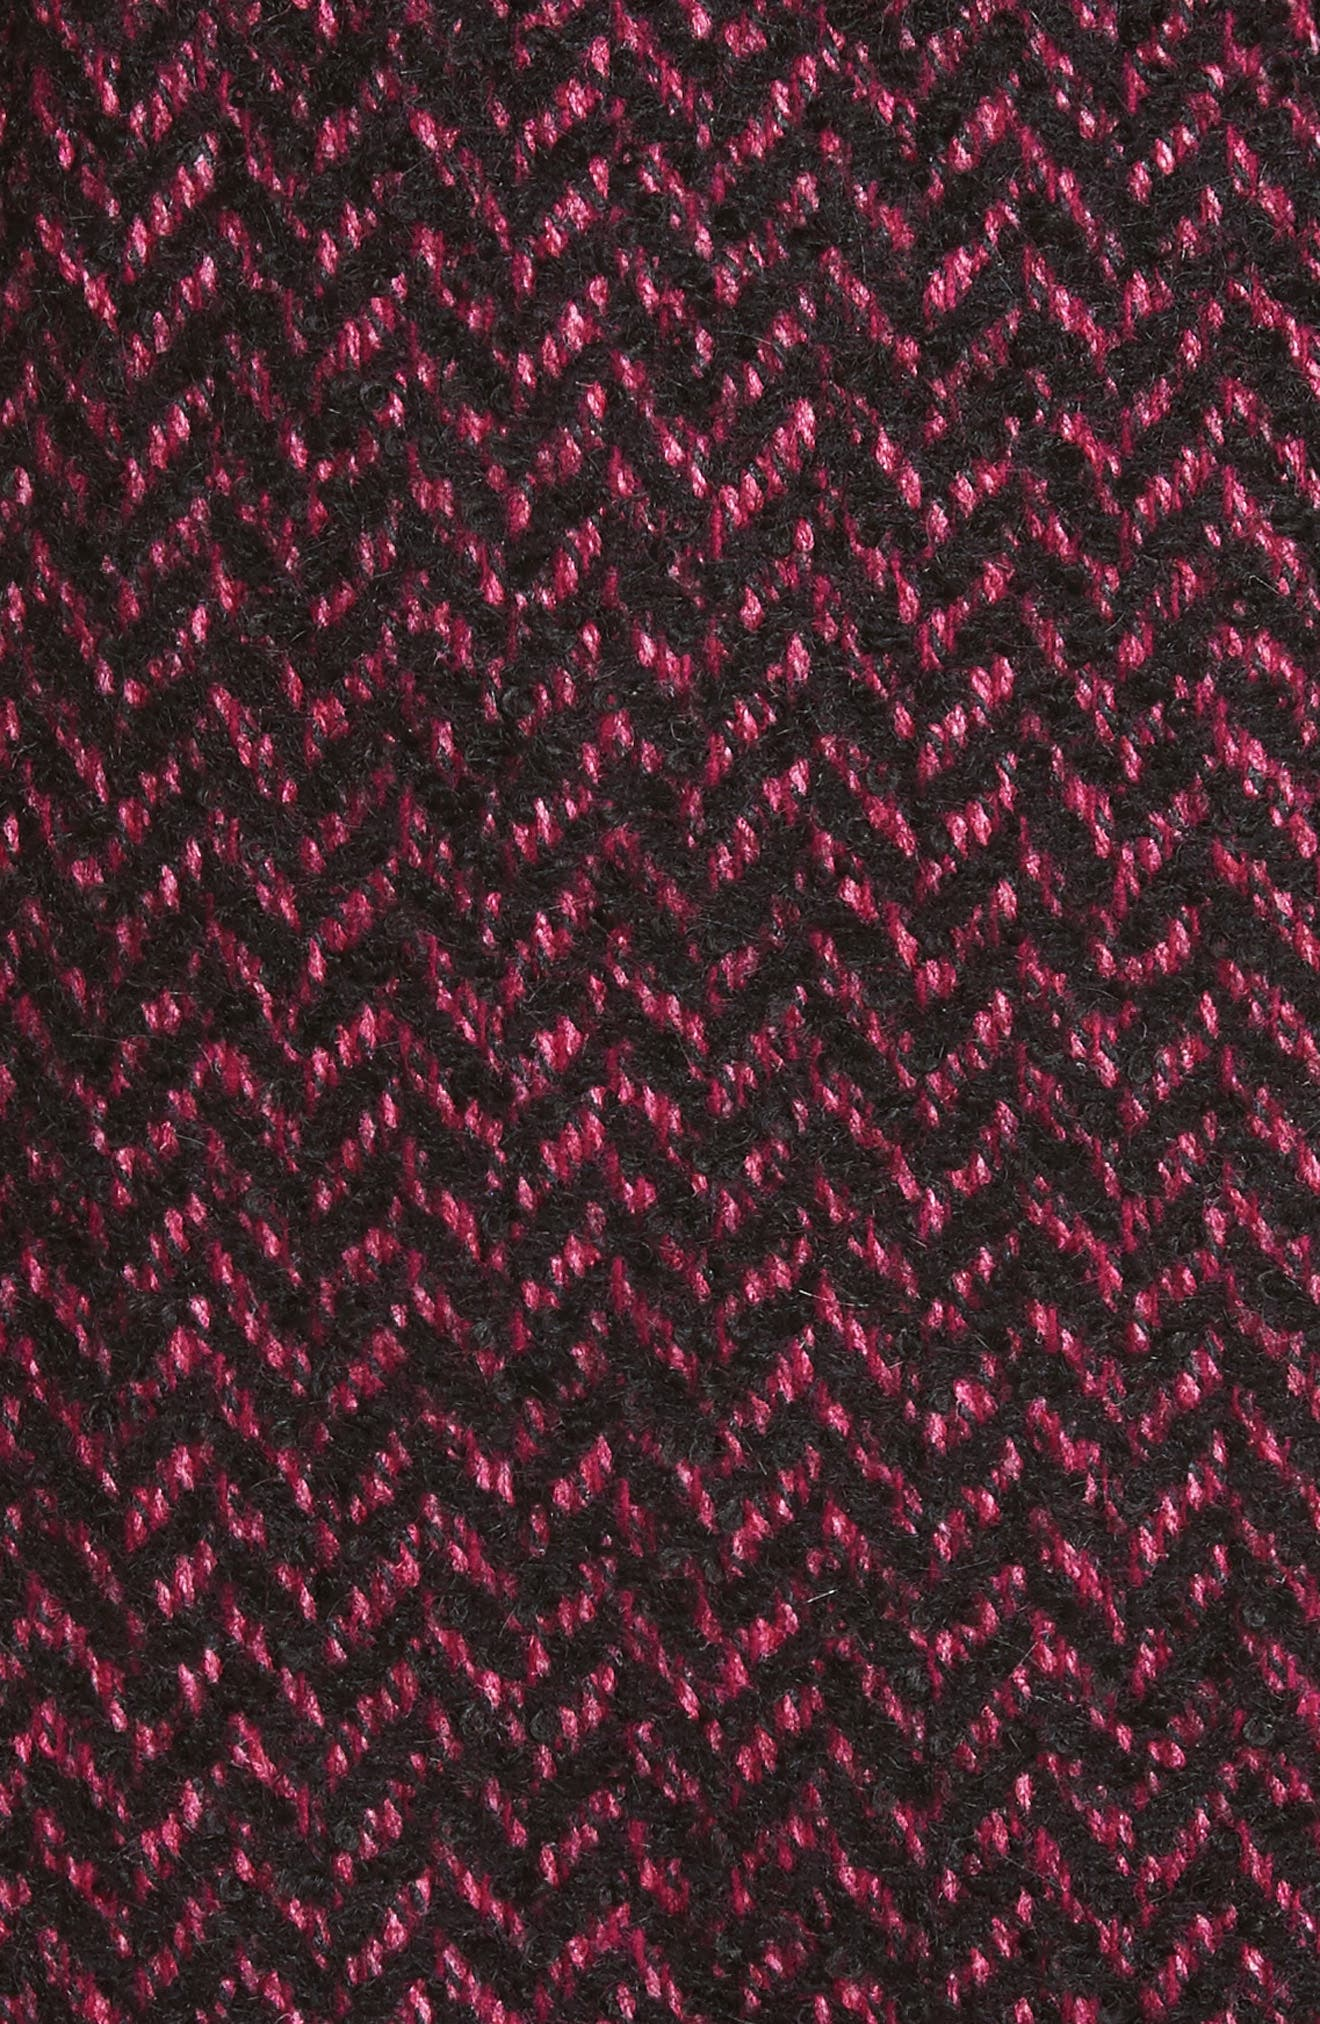 Herringbone Wool Blend A-Line Skirt,                             Alternate thumbnail 3, color,                             Magnolia/ Black